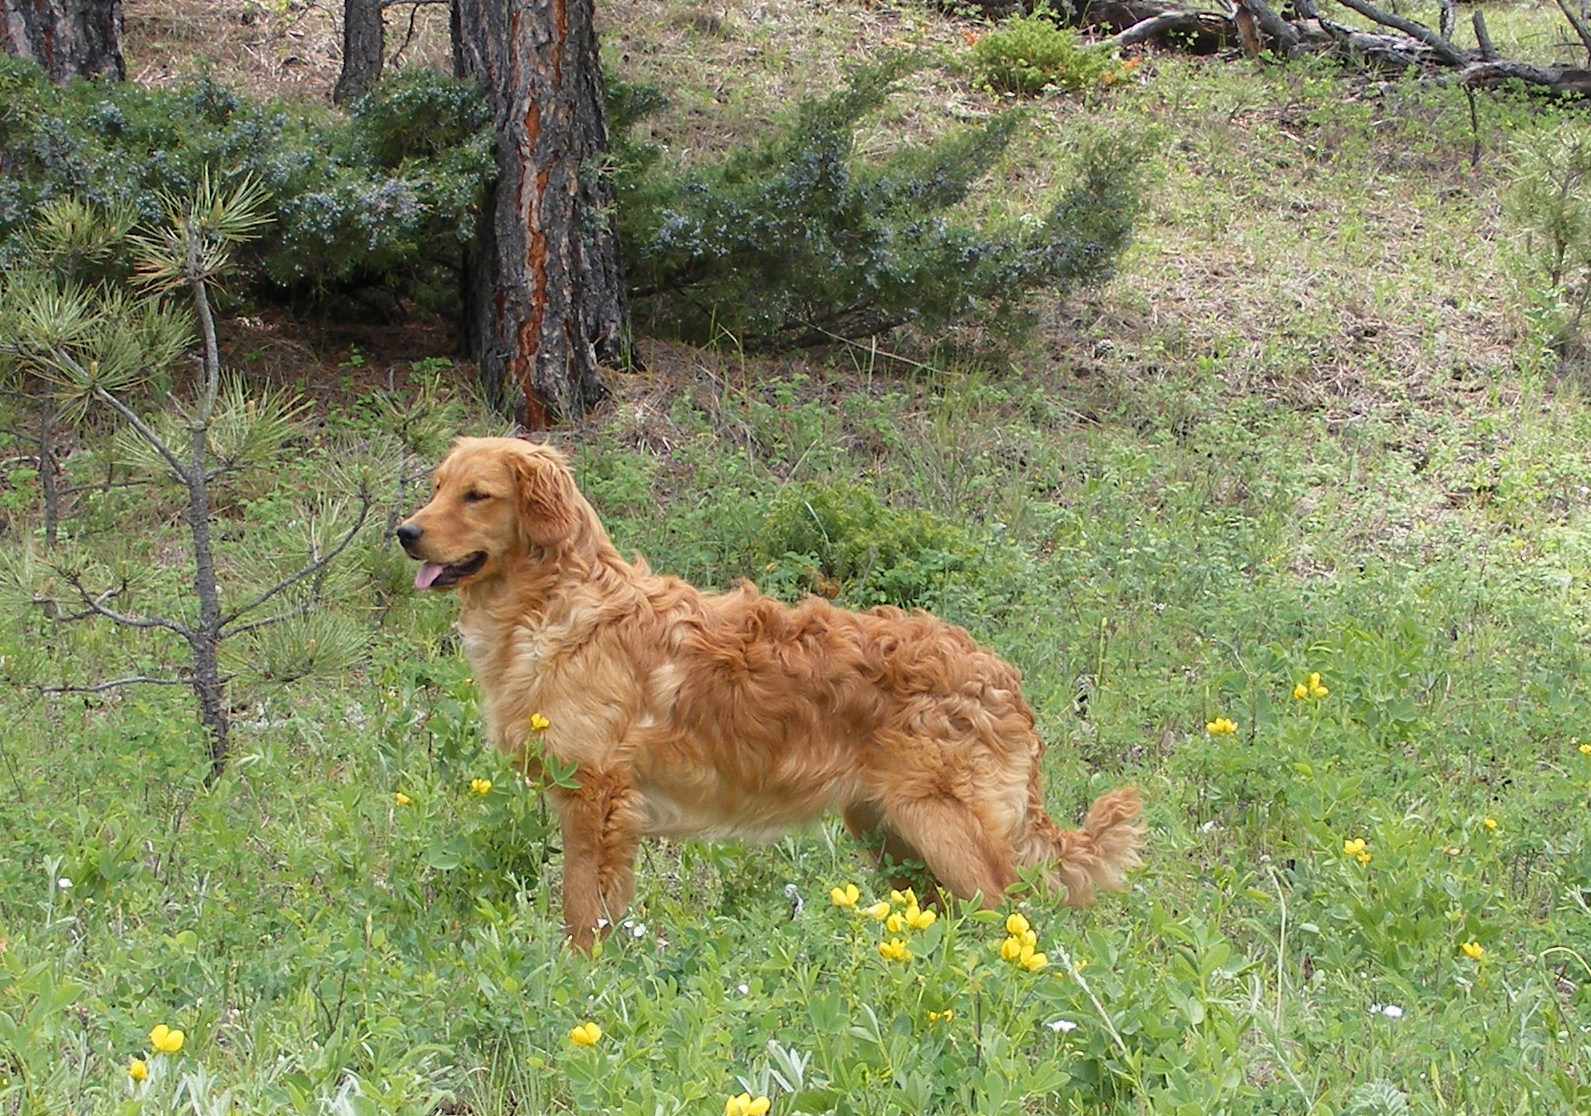 Golden retriever cocker spaniel full grown